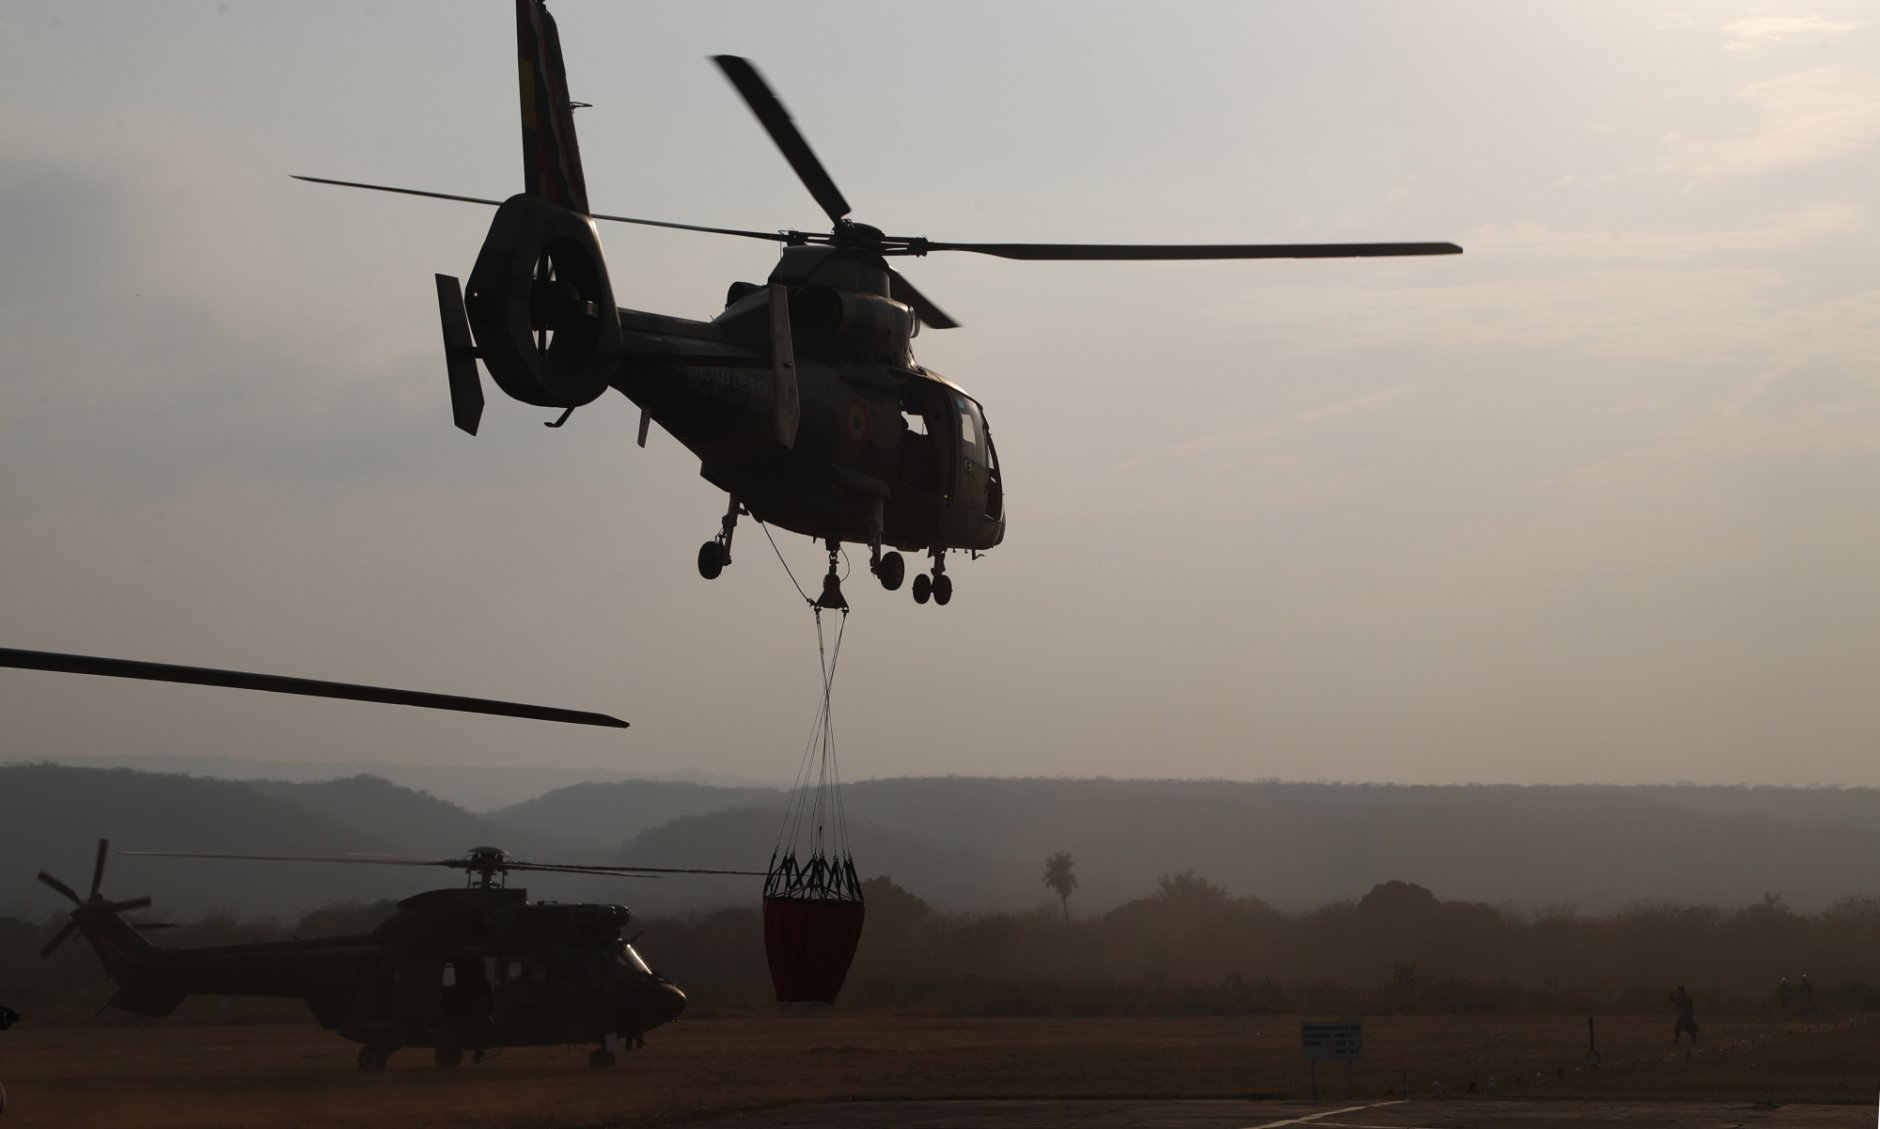 A helicopter lifts off from a military airport Robore, Bolivia, with water to drop on the Chiquitanía Forest as the military fights forest fires, Sunday, Aug. 25, 2019. Bolivian President Evo Morales said Saturday he would welcome aid in fighting his country's wildfires, which have scorched more than 2,900 square miles (744,000 hectares) of land in the Chiquitanía region over the past two weeks. (AP Photo/Juan Karita)